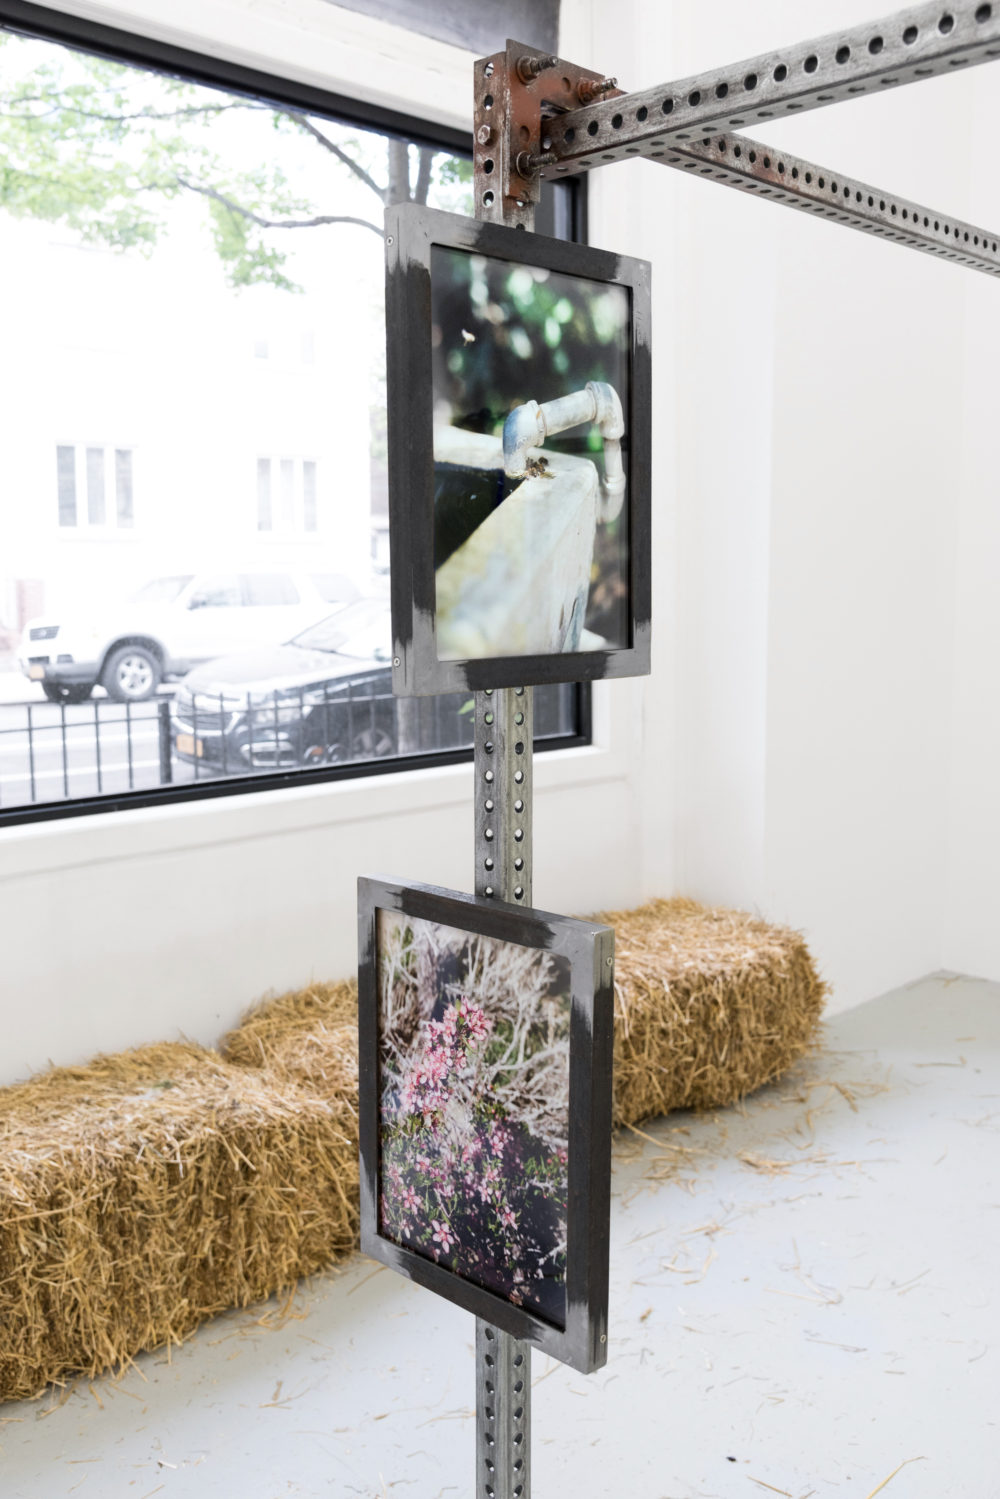 Dusty Contessa Finds A Homestead, 2016 Installation view